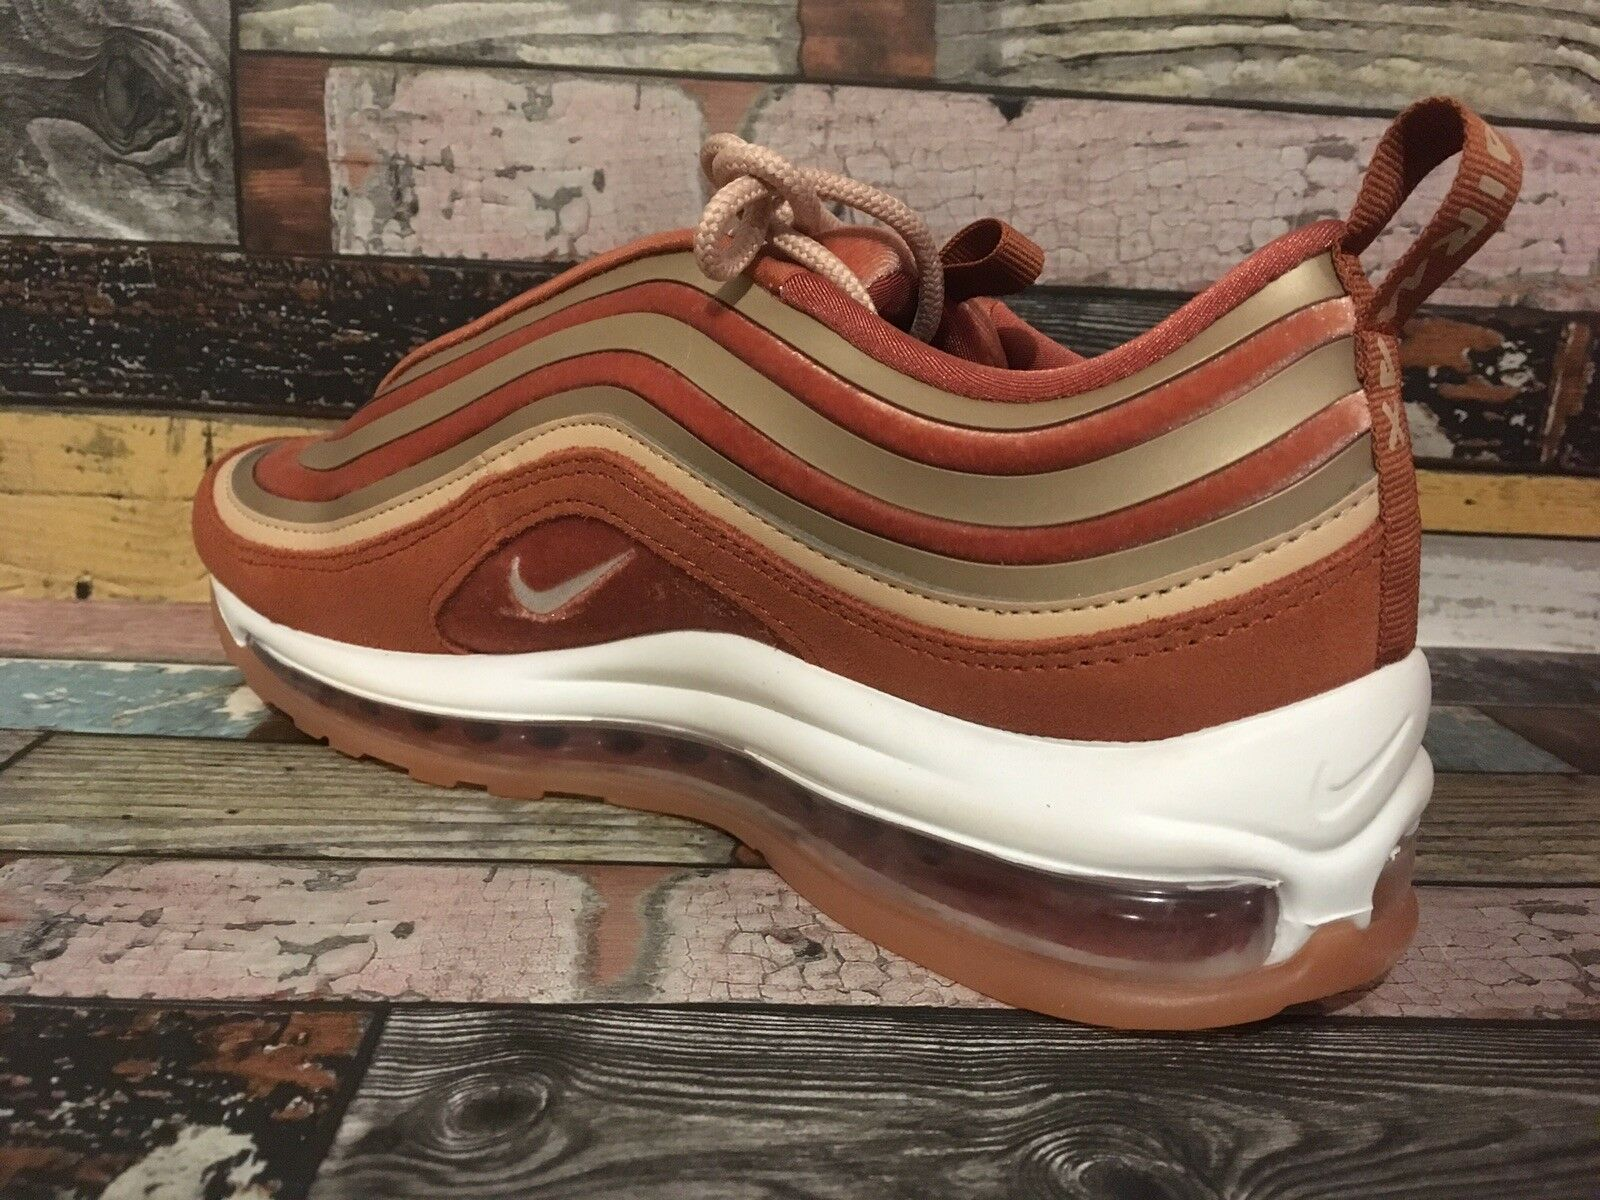 newest collection c4f45 865bc Nike Air Max 97 UL 17 Lux Womens Trainers UK Size 7.5 Ah6805 200 for sale  online   eBay